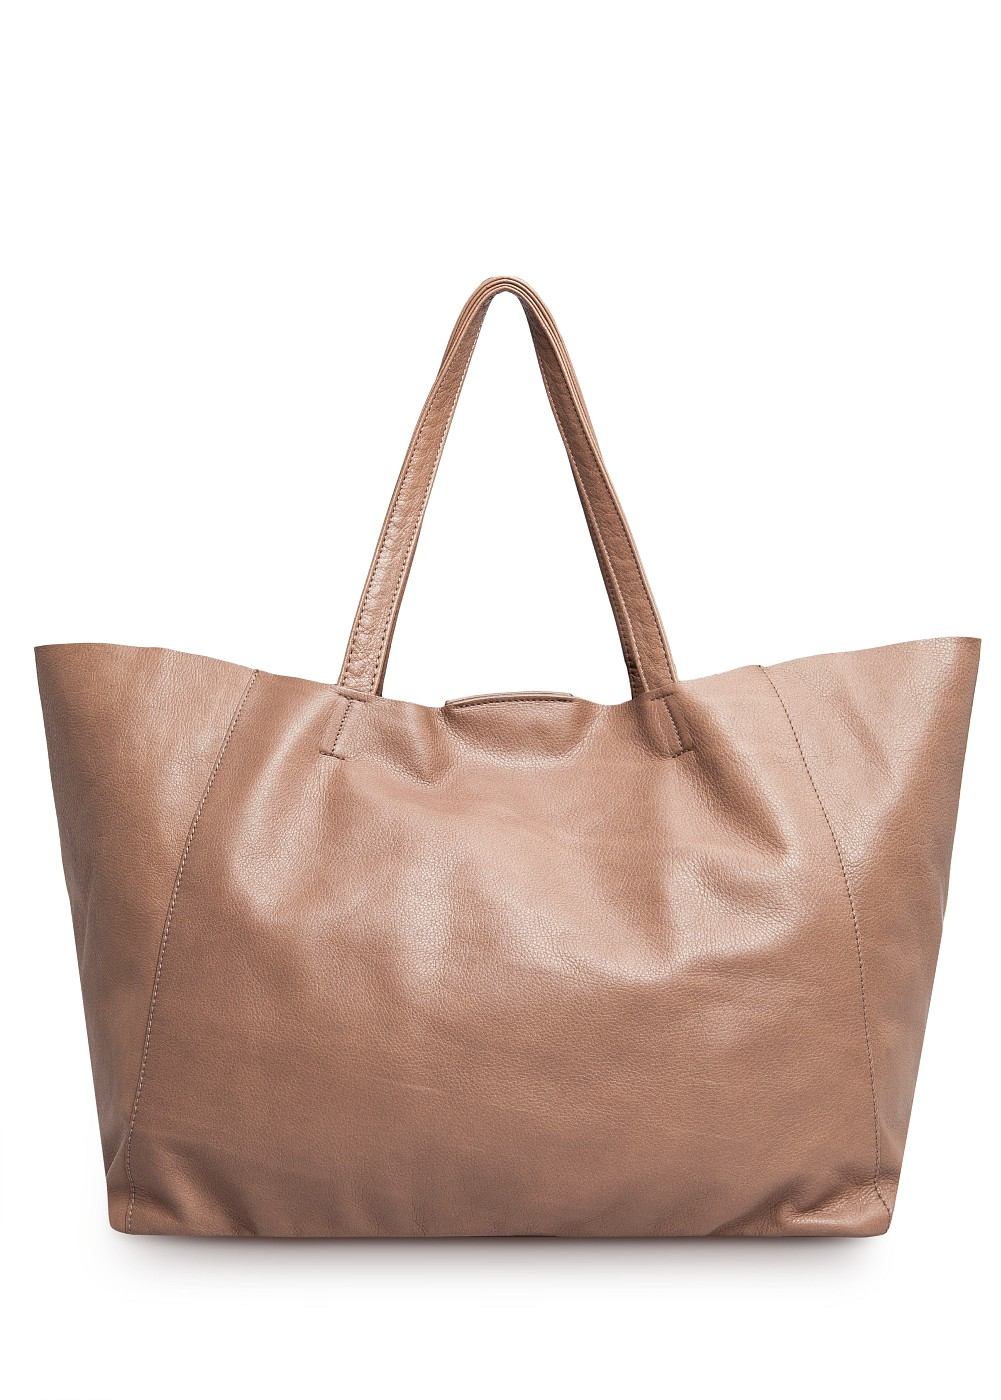 Leather Tote Bags: liveblog.ga - Your Online Shop By Style Store! Get 5% in rewards with Club O! Dooney & Bourke Ostrich Embossed Leather Brandy Bag (Introduced by Dooney & Bourke at $ in May ) 7 Reviews. Quick View Michael Kors Medium Signature Ciara Messenger Handbag in Brown/ Electric Blue.